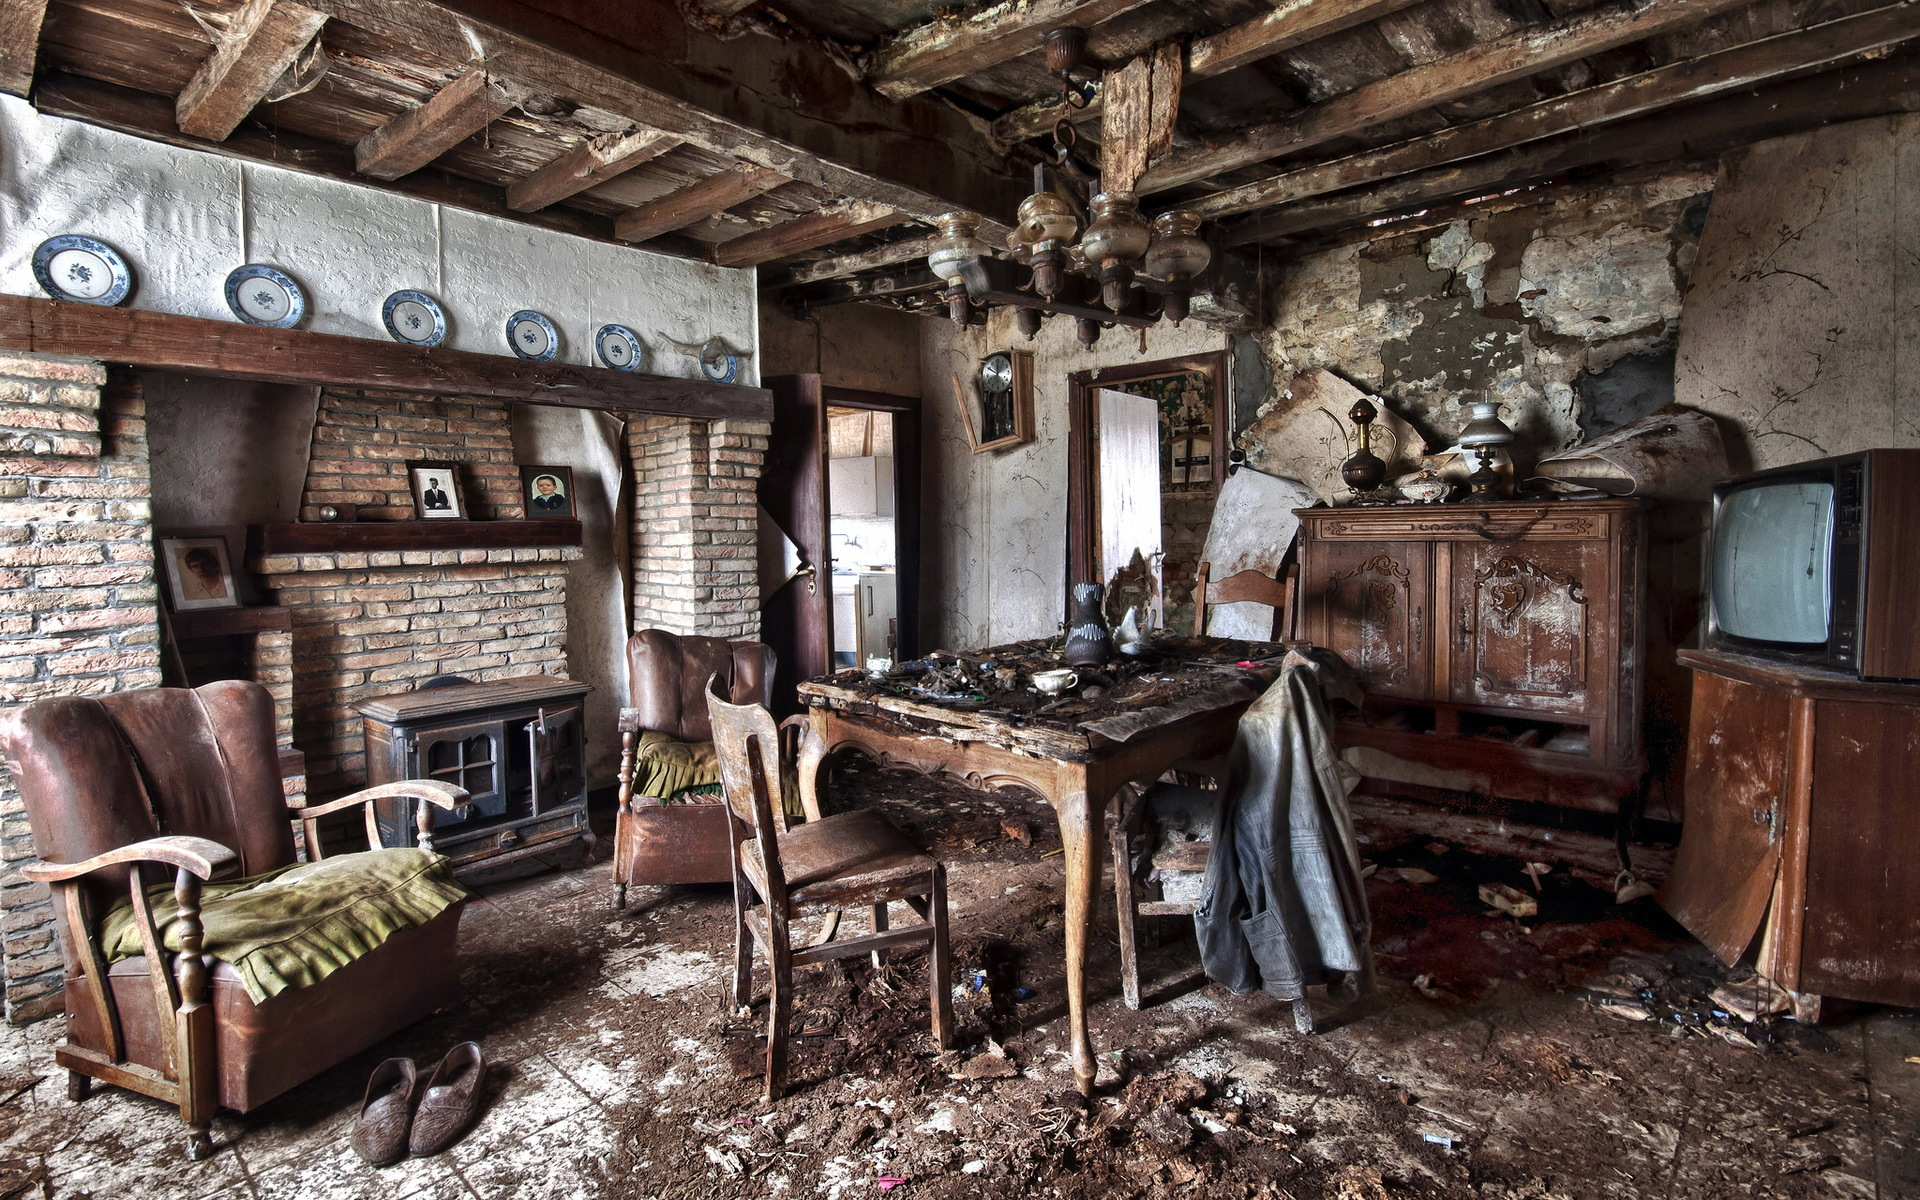 Interior Old Table Armchair Room Design Ruins Apocalyptic F Wallpaper